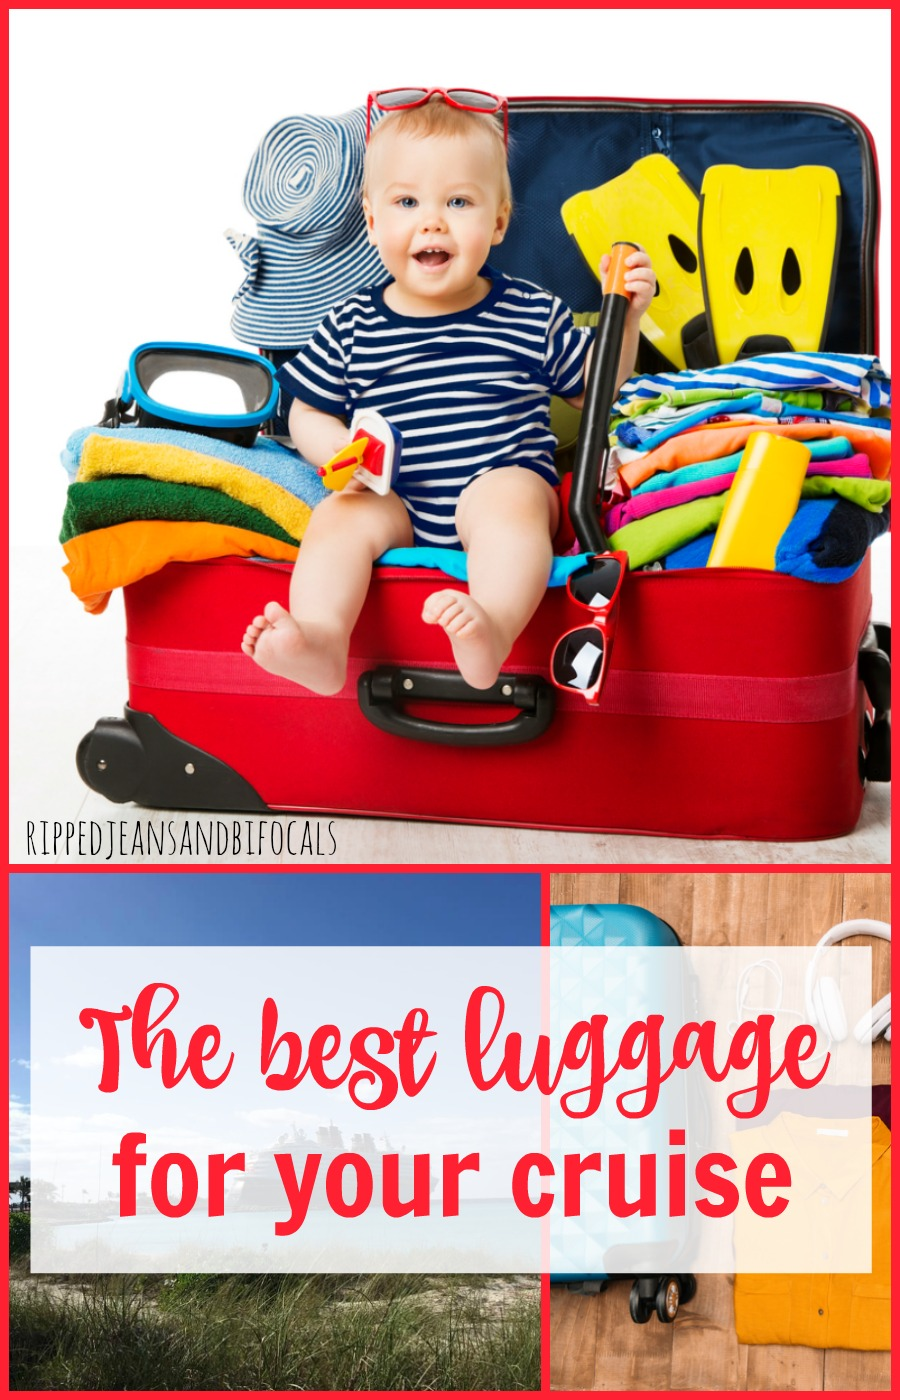 The best luggage for cruises|Ripped Jeans and Bifocals